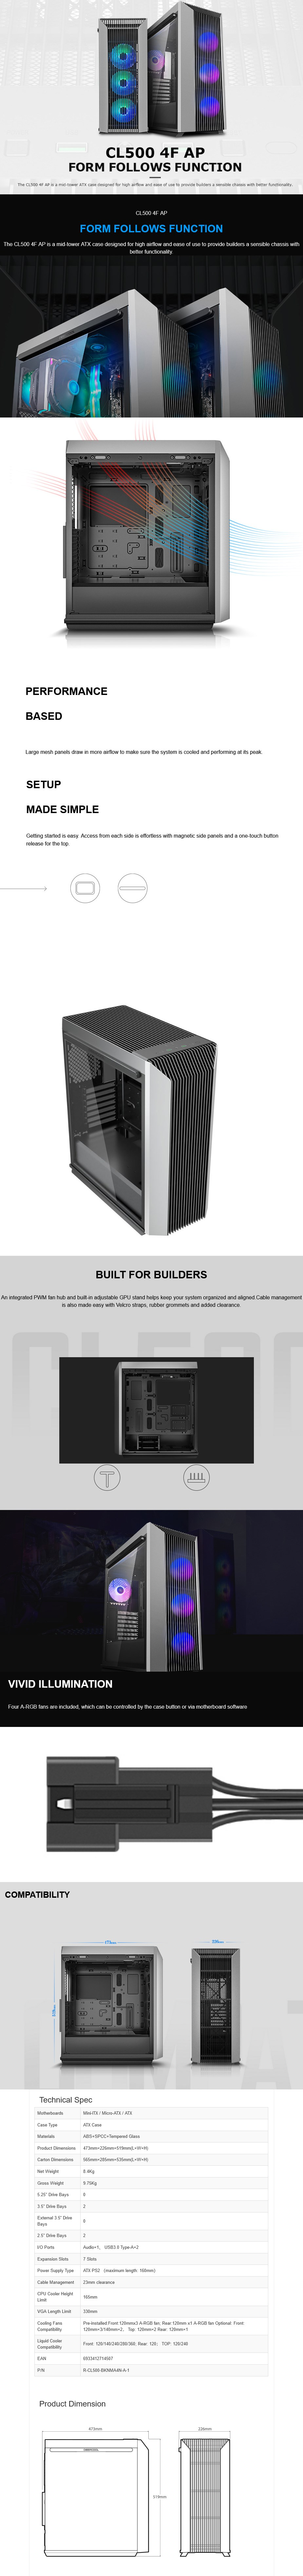 Deepcool CL500 4F AP Tempered Glass Mid-Tower ATX Case - Overview 1